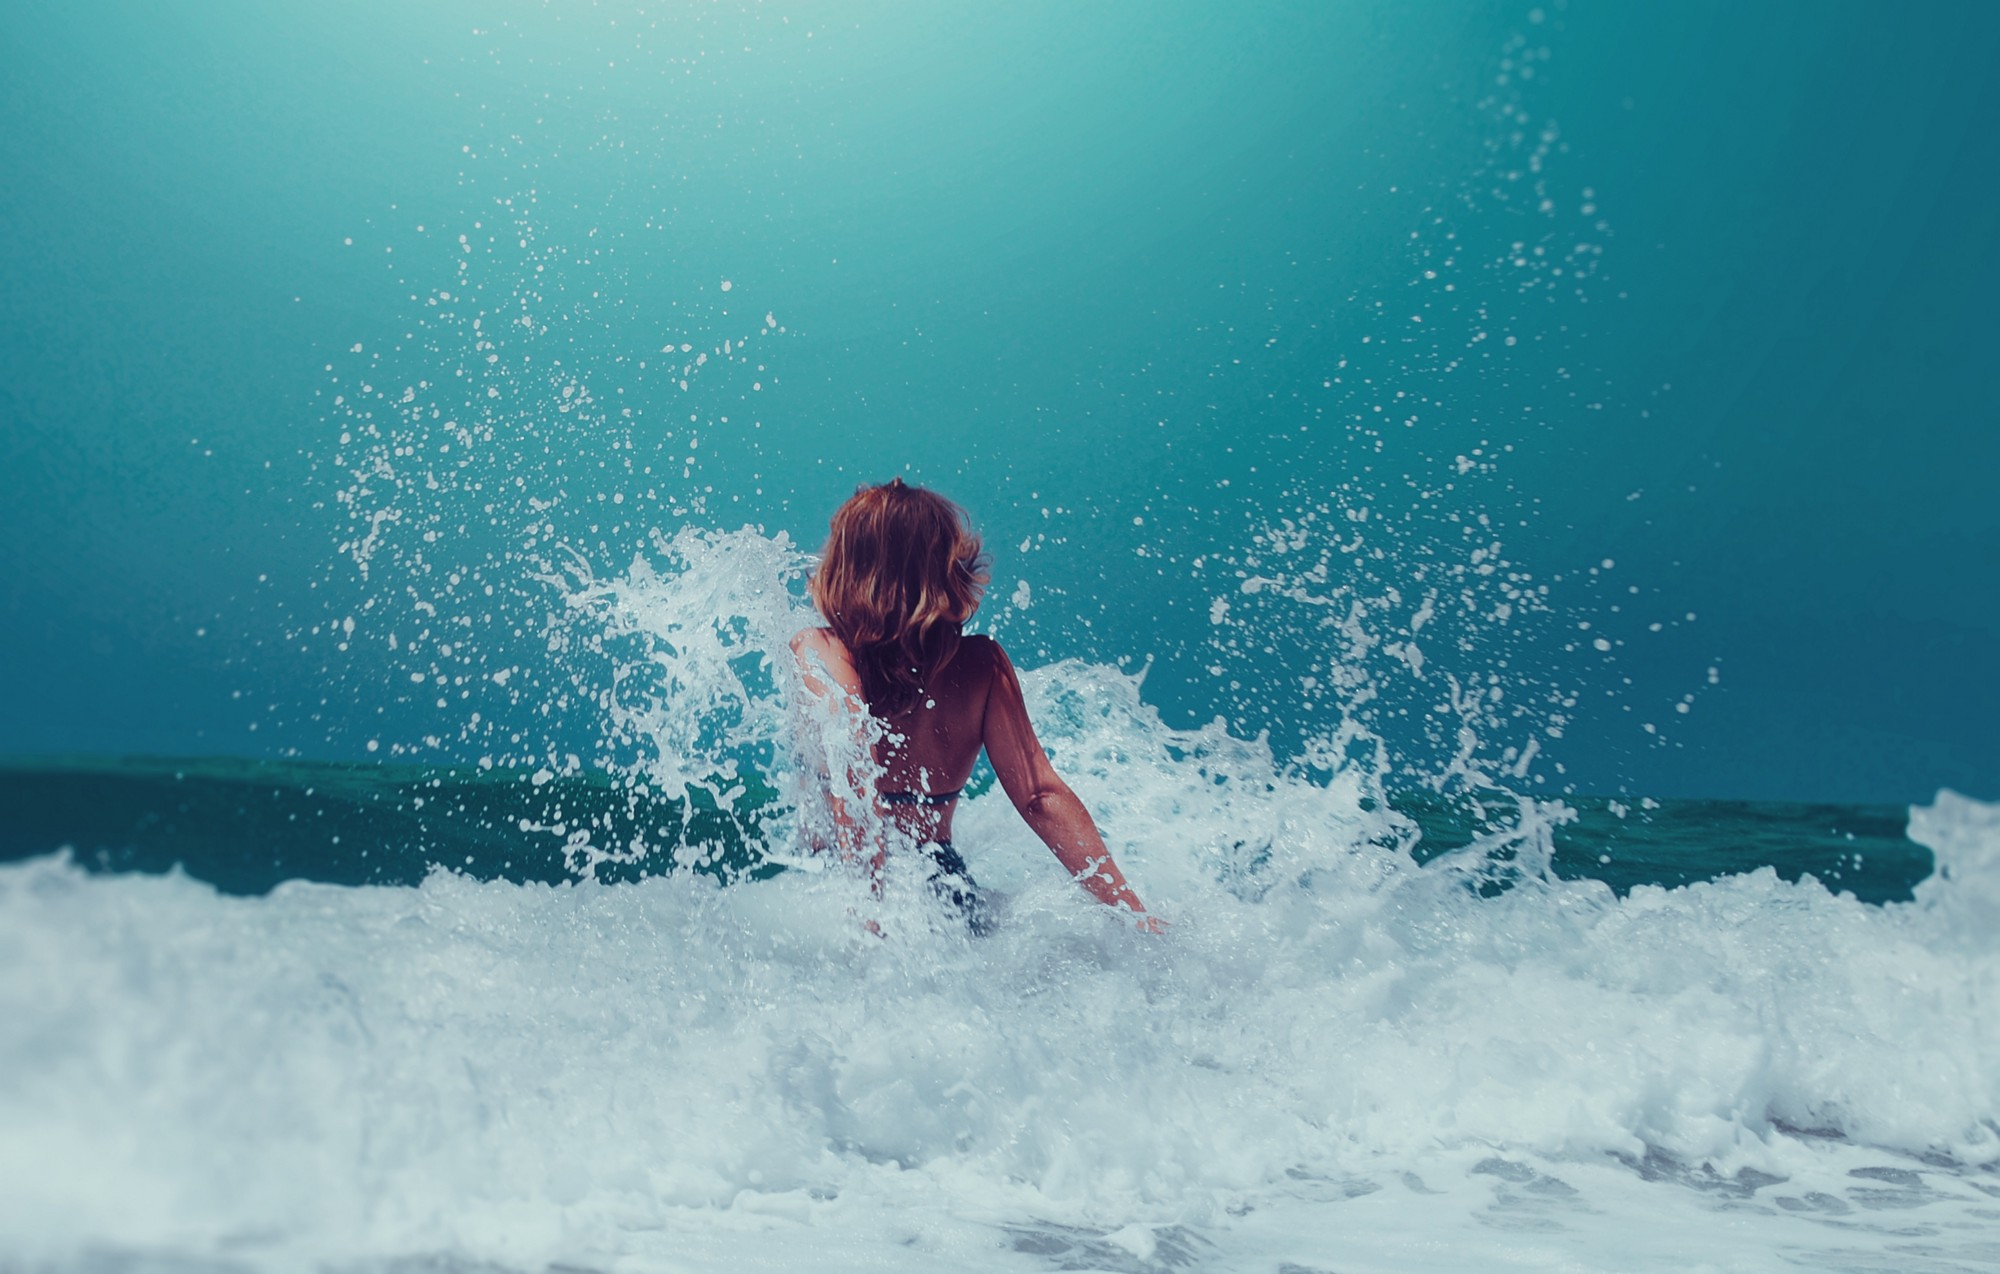 a young woman rushes forwards into a crashing wave